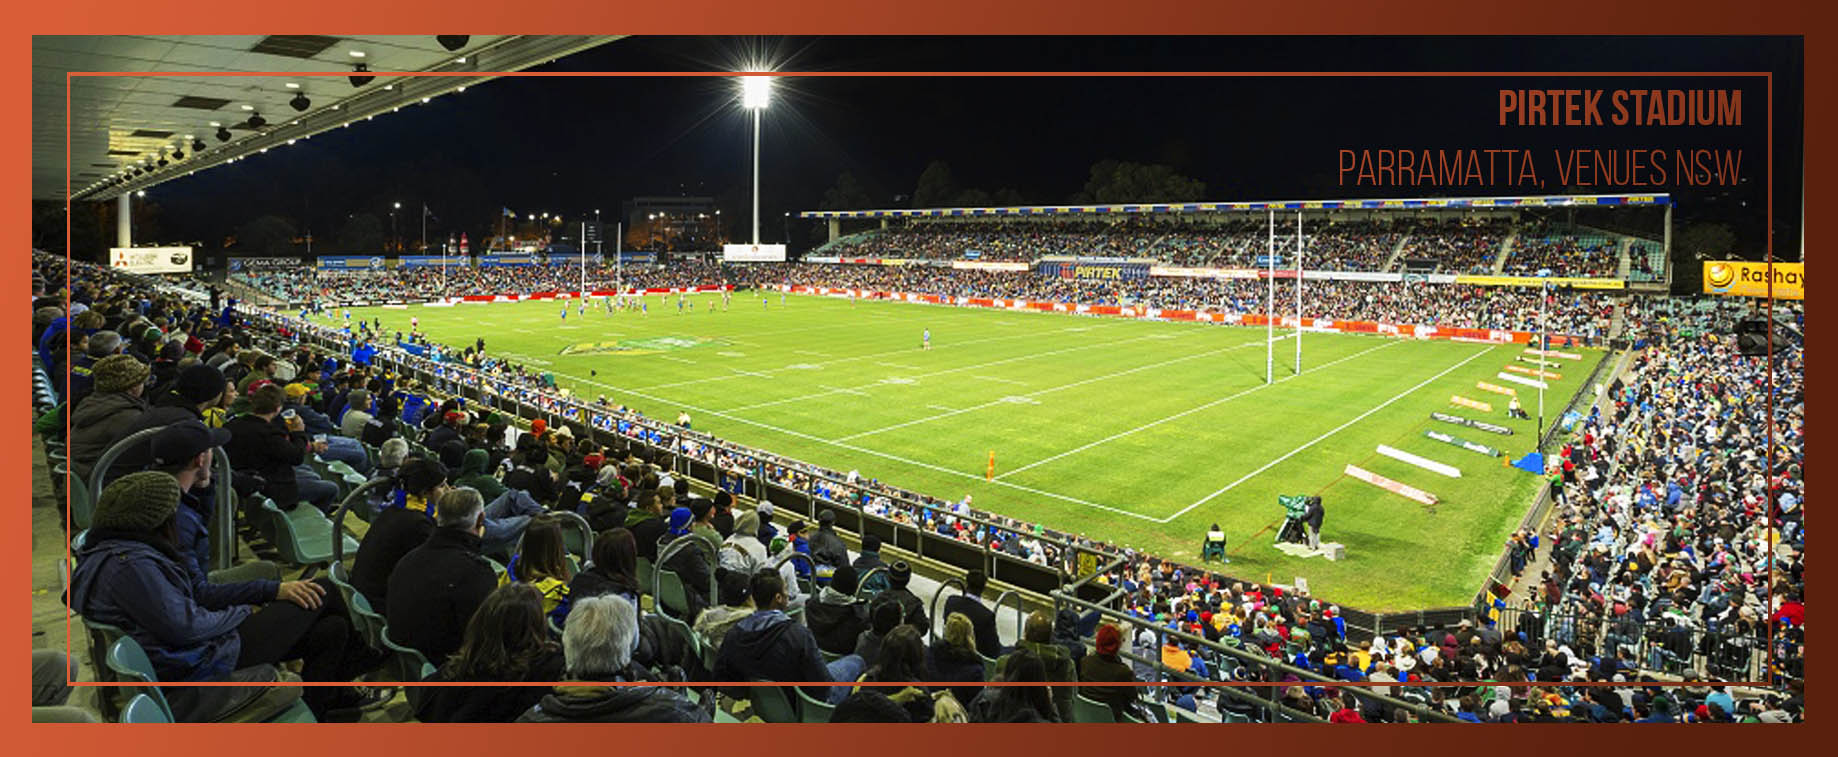 Pirtek Stadium during a game of rugby league